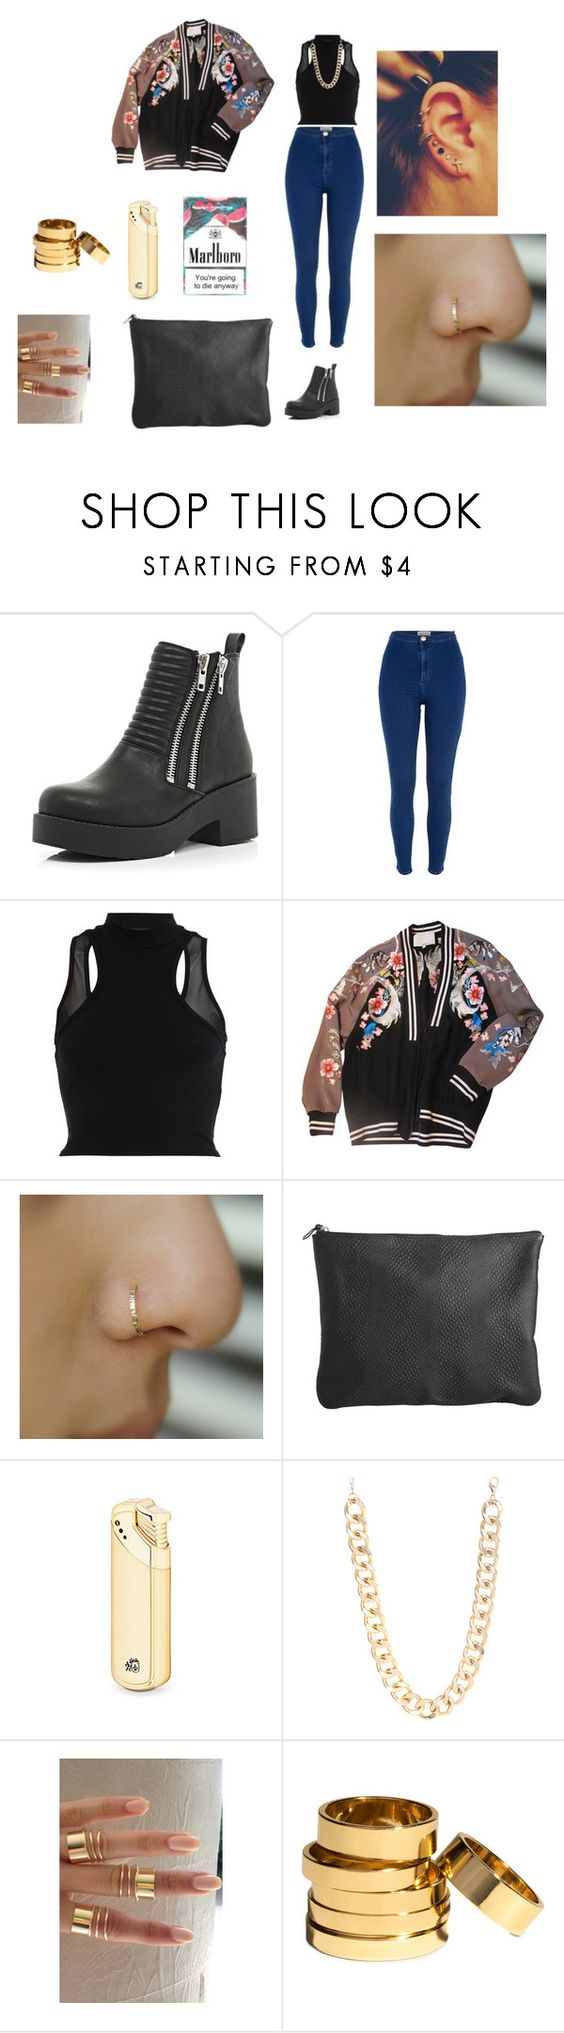 """""""I Ain't worry about nothin'"""" by missladiva ❤ liked on Polyvore featuring River Island, 3.1 Phillip Lim, Pieces, Jane Norman and H&M"""